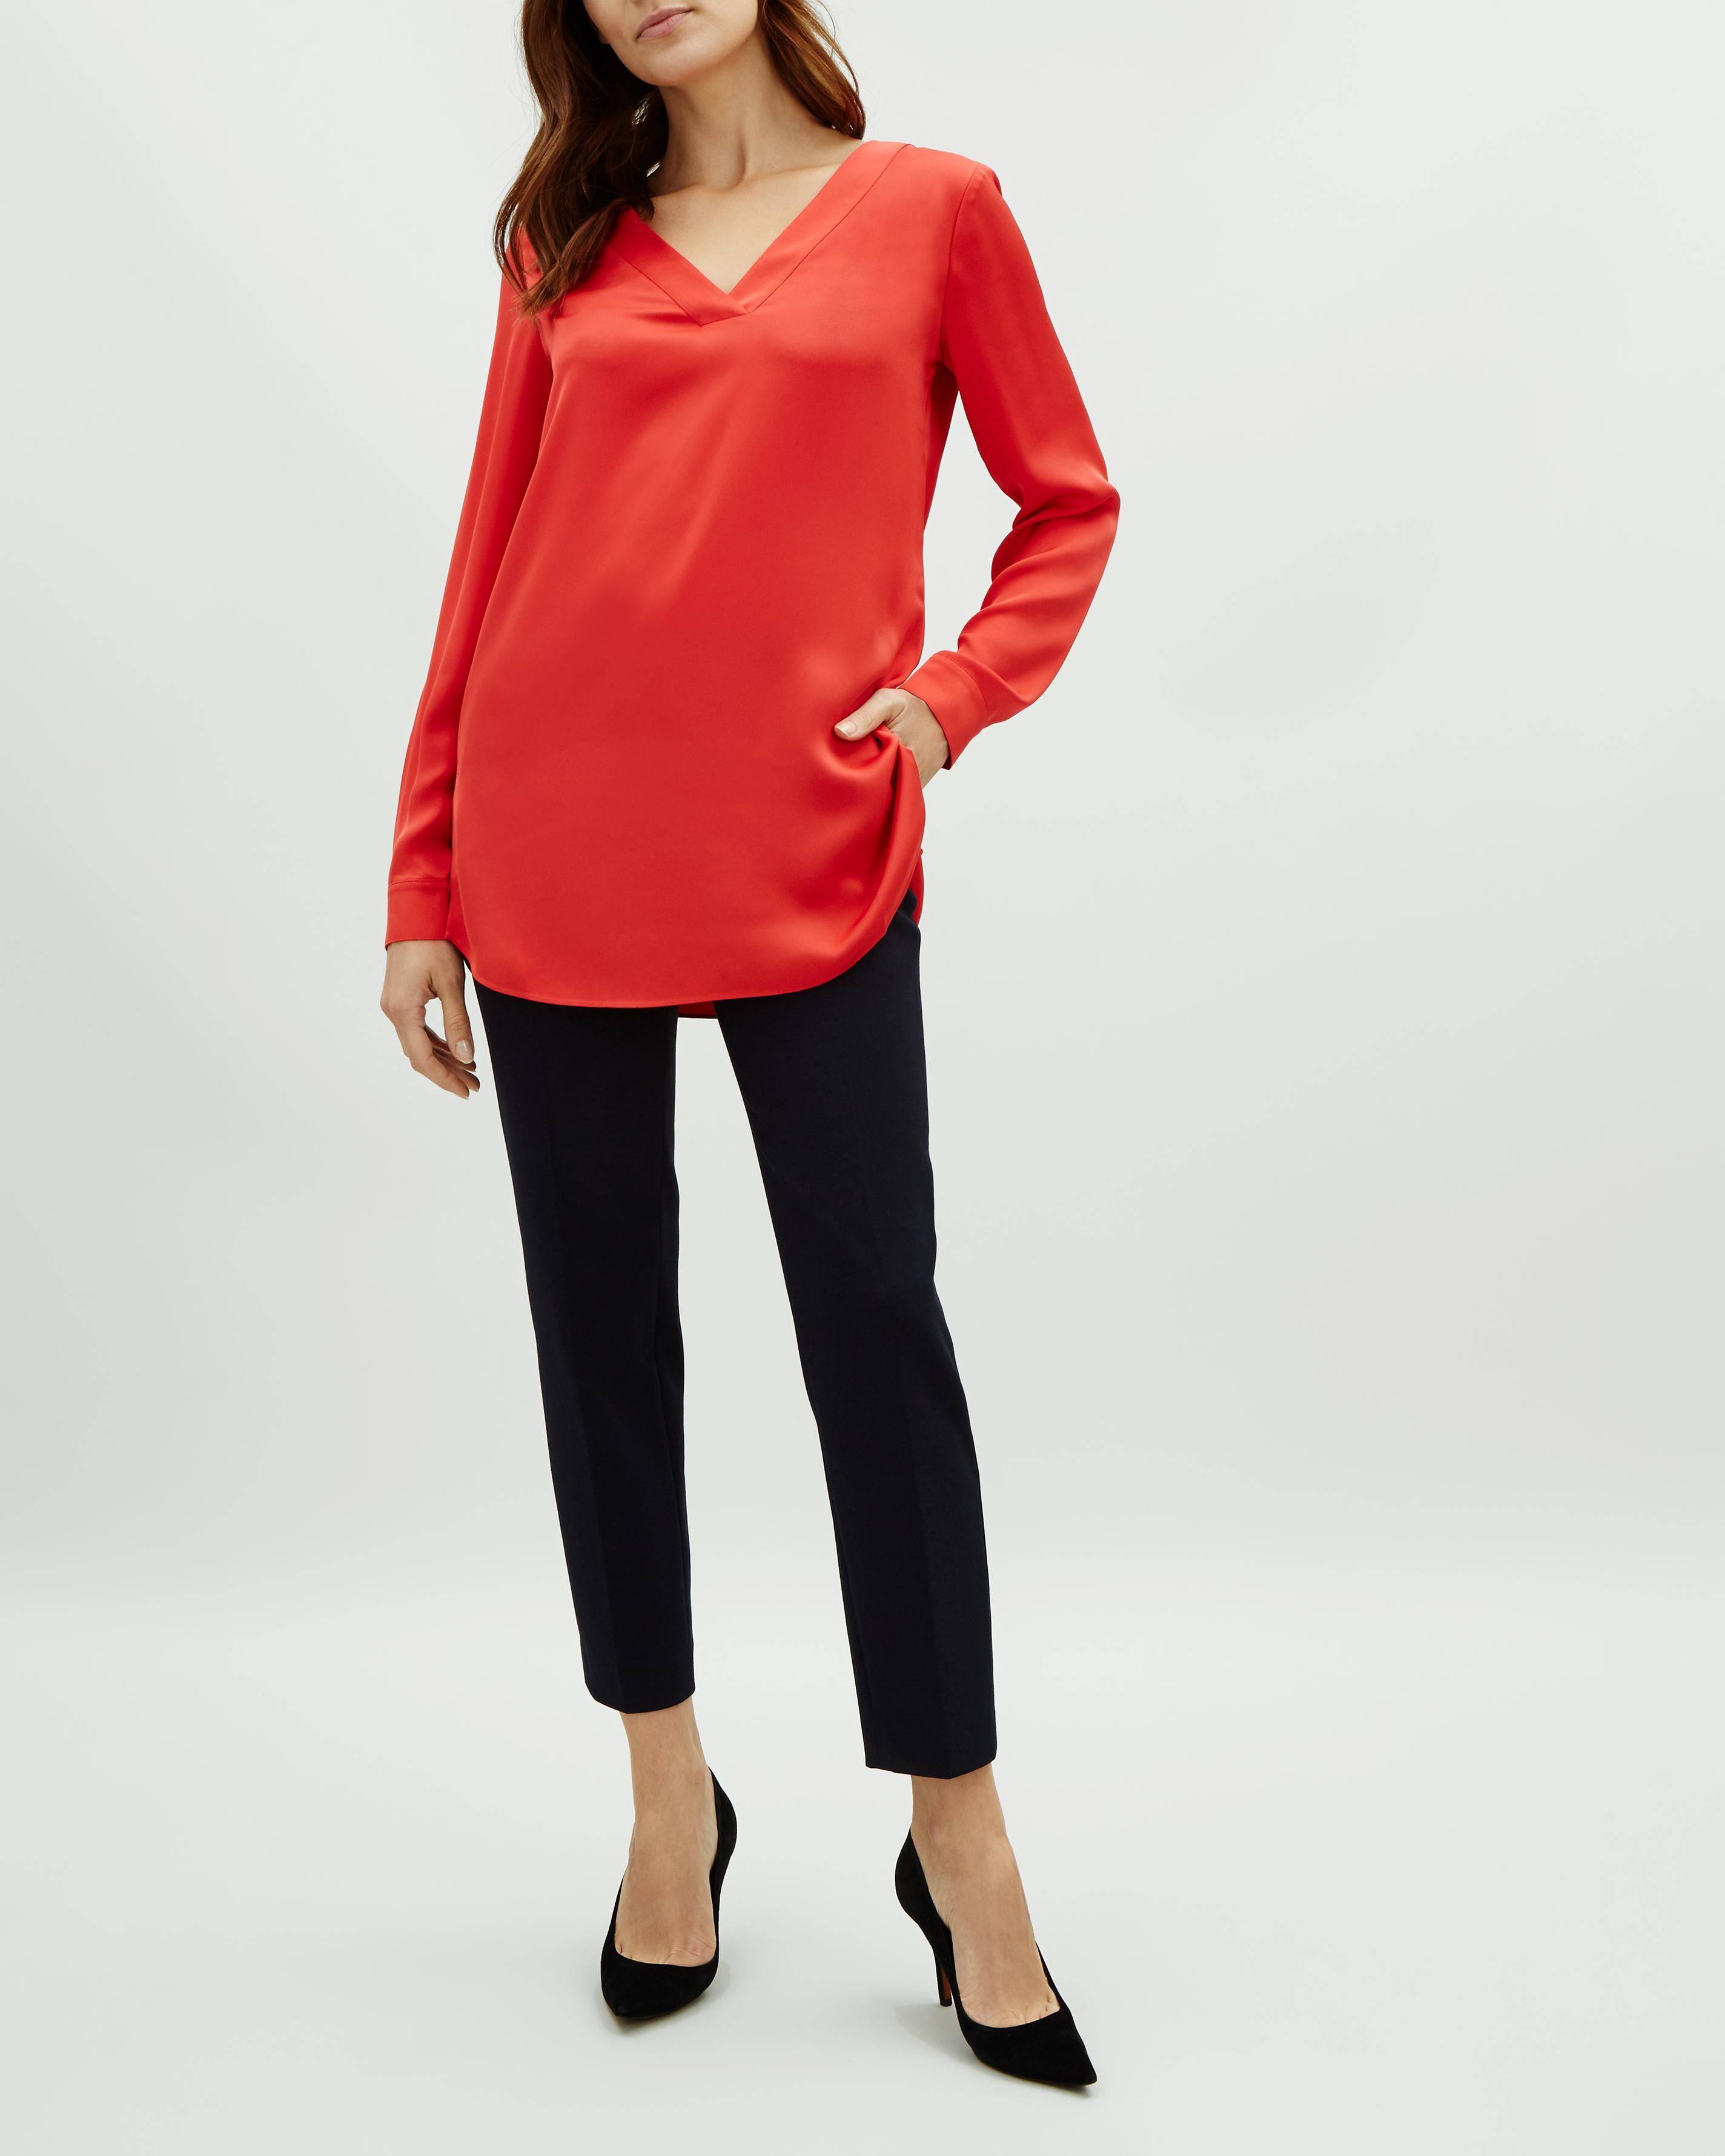 46da02f595a524 Jaeger Satin V Neck Tunic Top in Red - Lyst